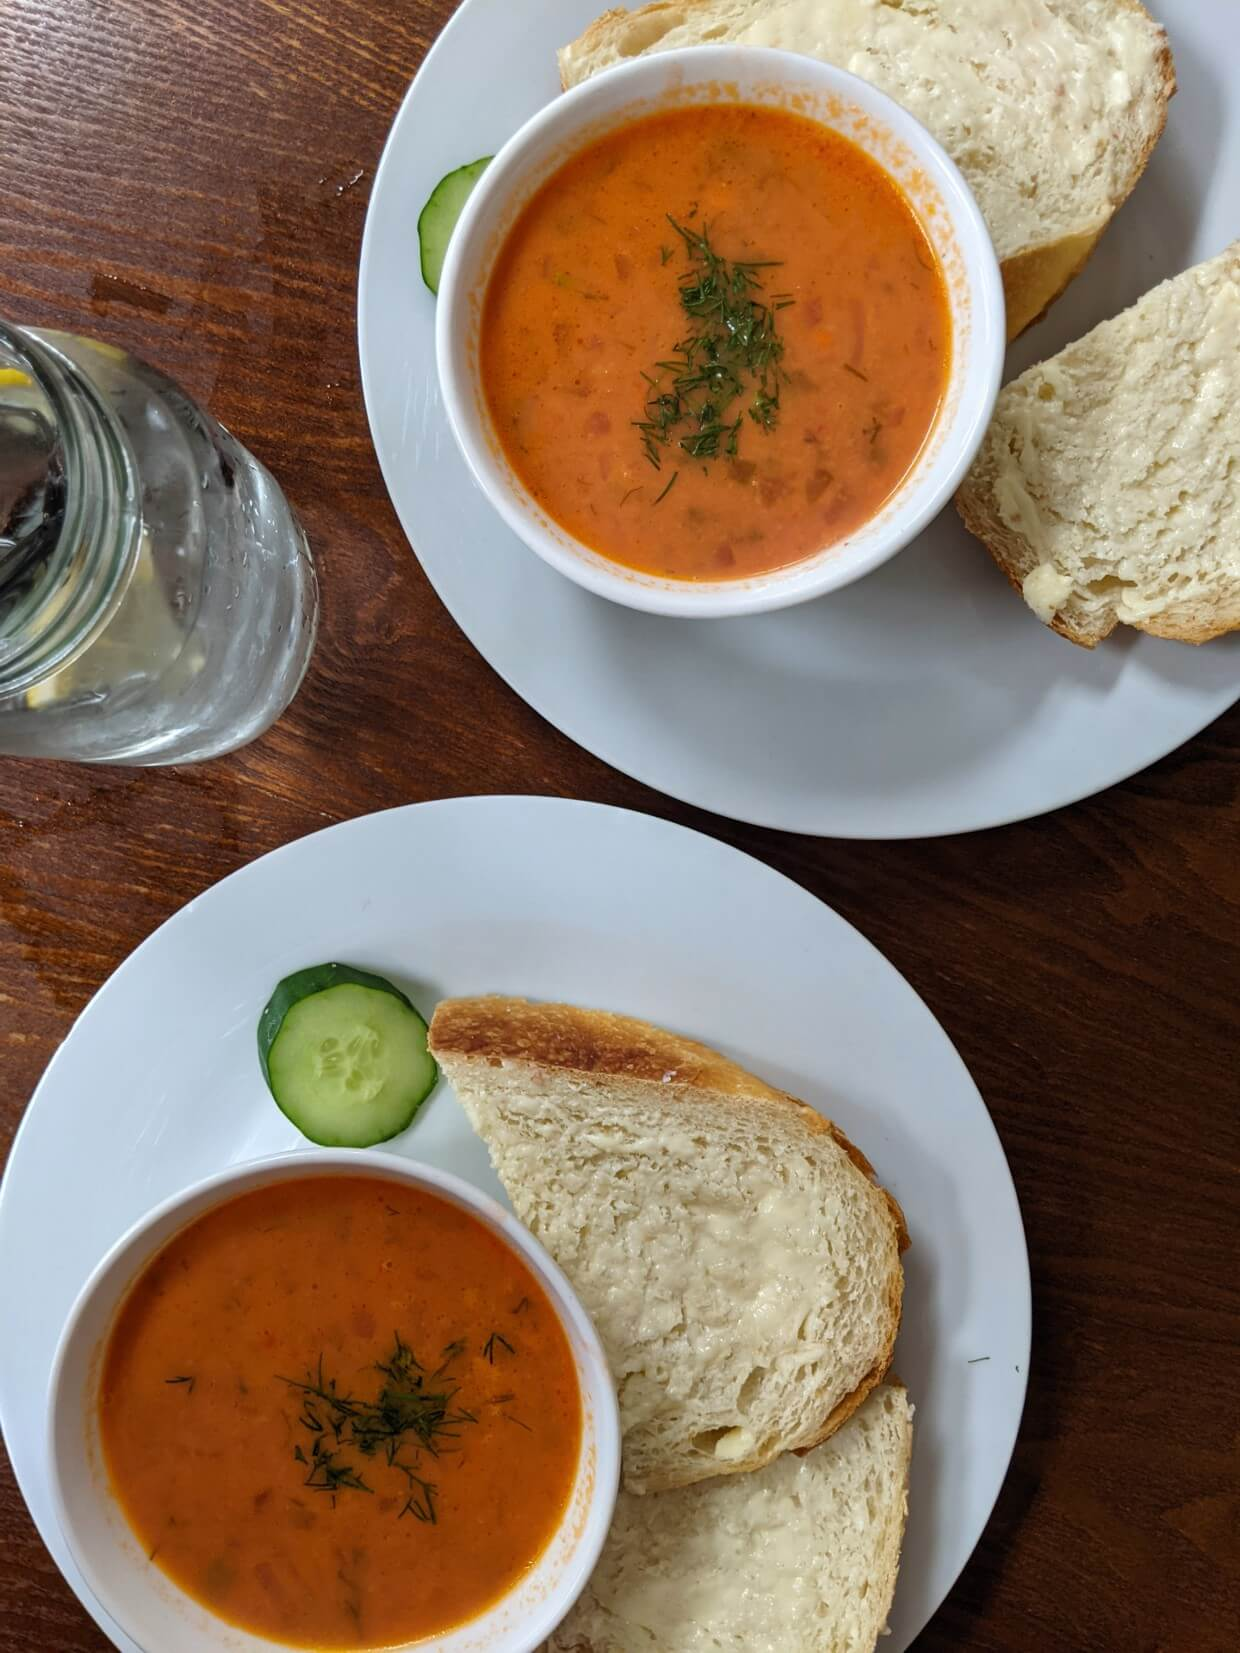 Overhead view of Borscht Bowl meal, with two bowls of orange coloured borscht, buttered bread, cucumber and a glass of water